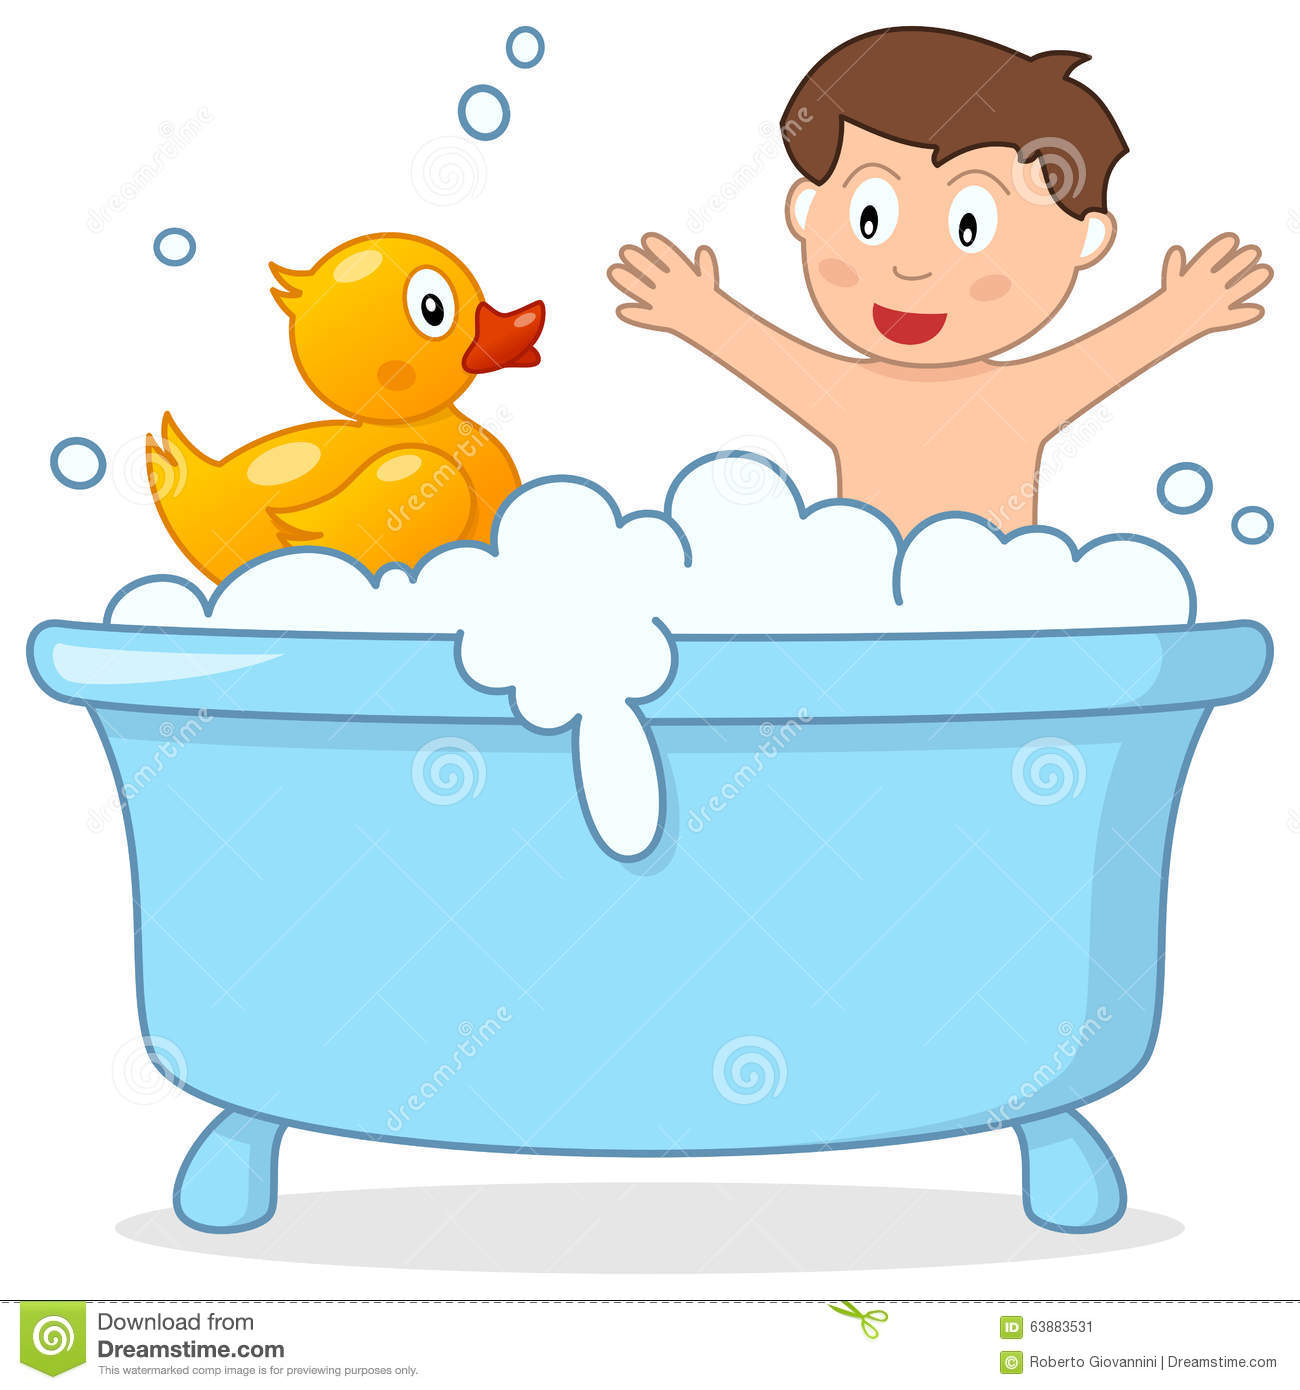 Boy taking a bath clipart 11 » Clipart Station.